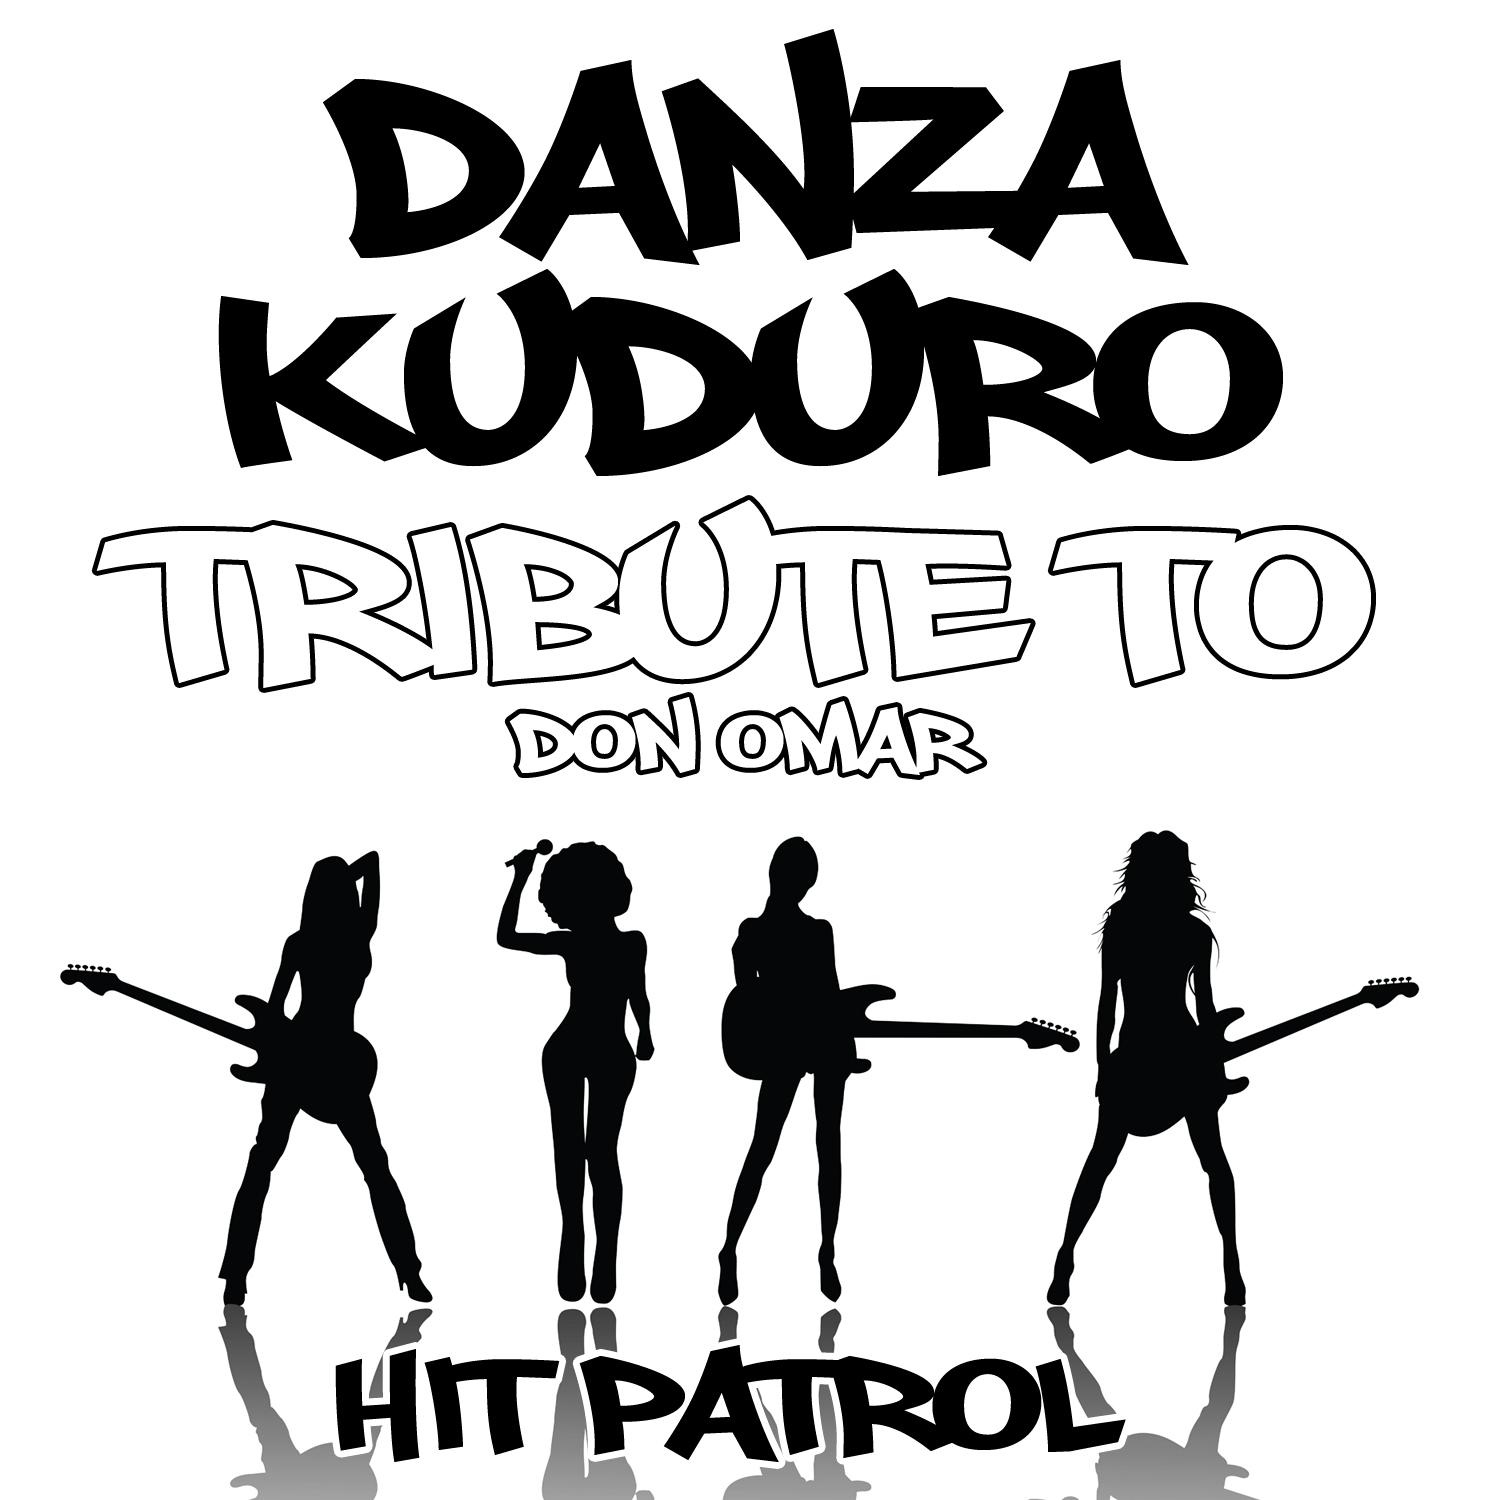 Danza Kuduro (Tribute to Don Omar) - Single